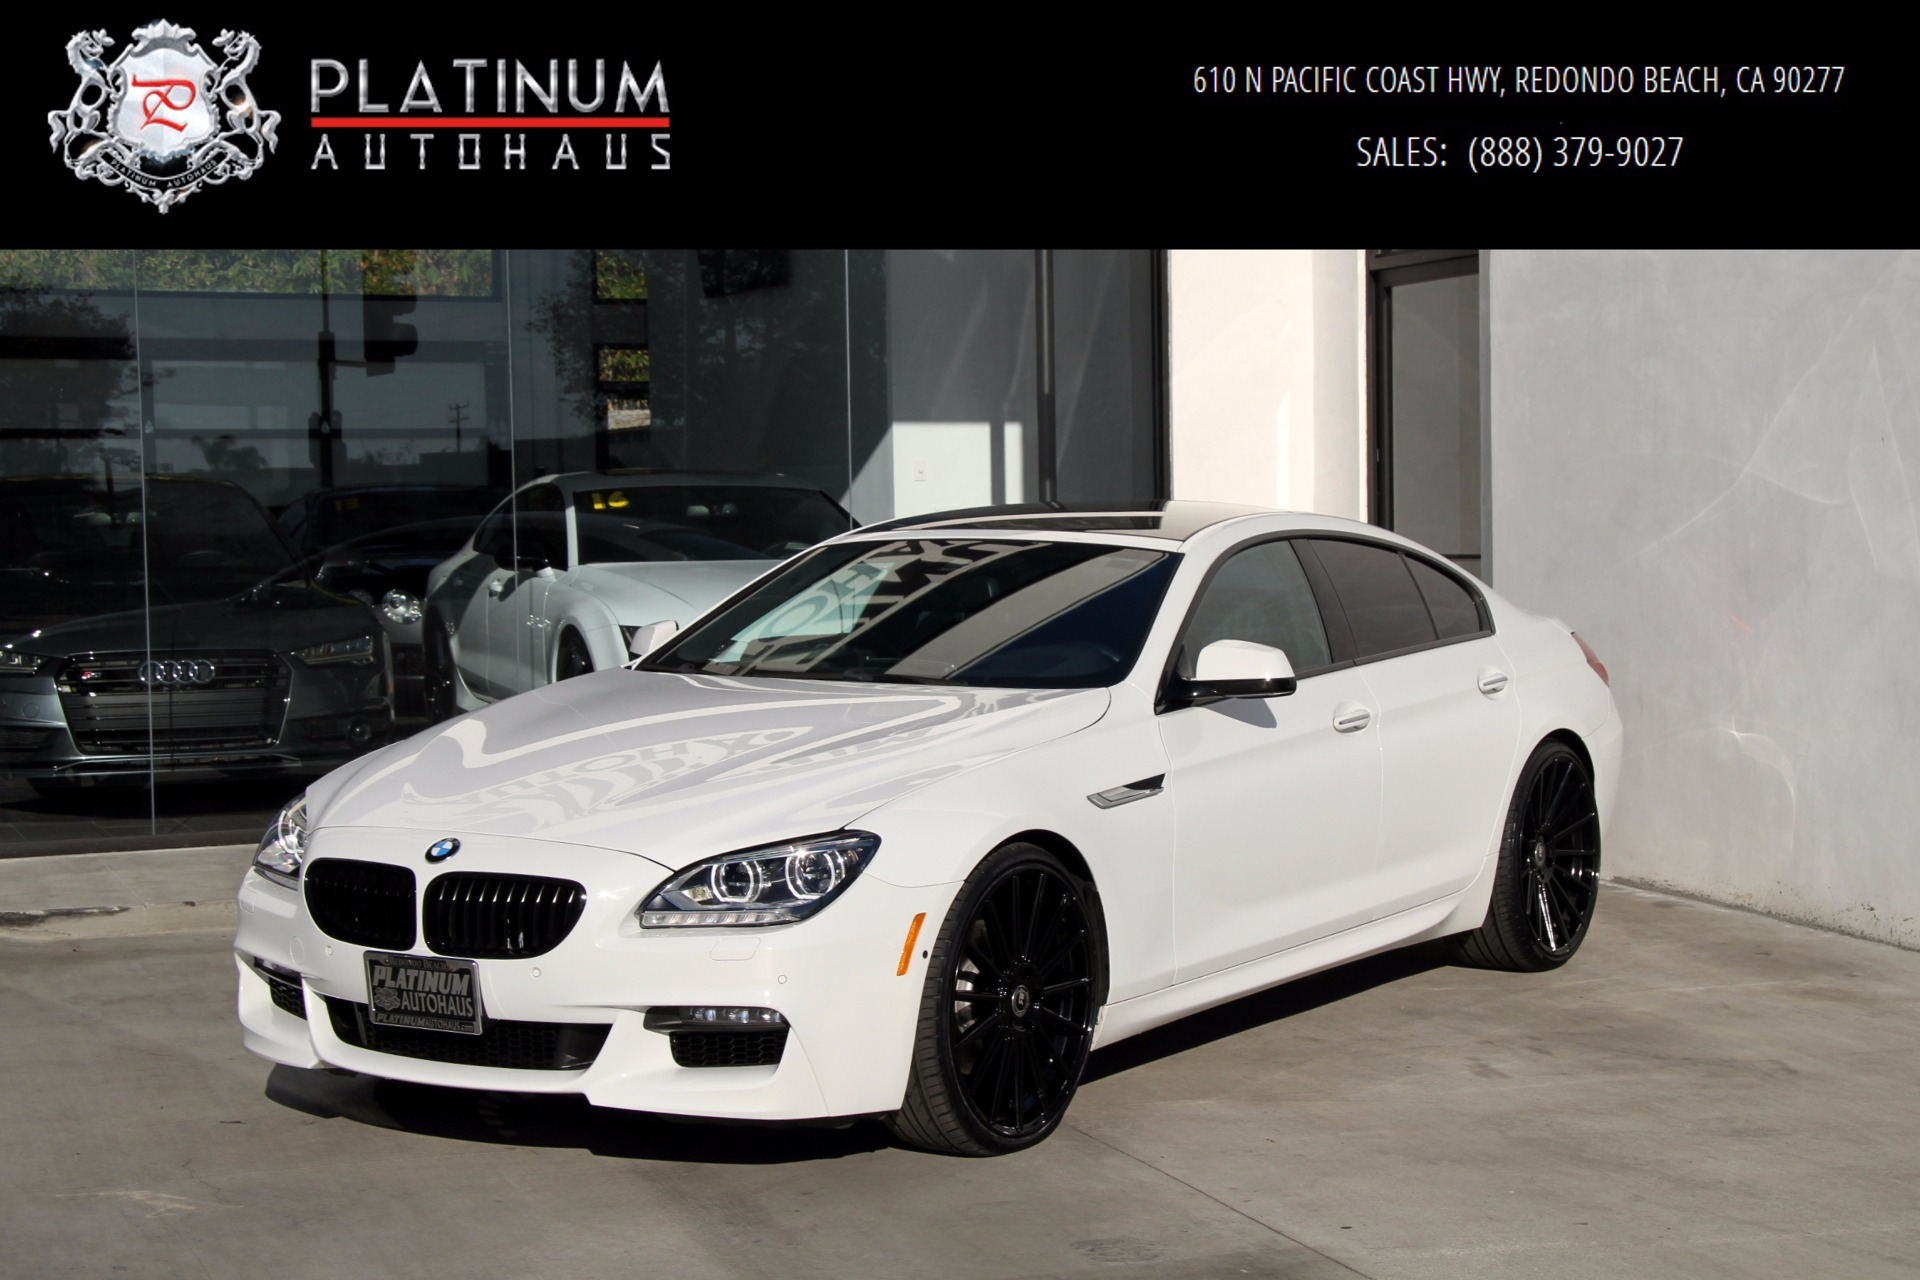 2015 bmw 6 series 650i gran coupe stock 6043 for sale near redondo beach ca ca bmw dealer. Black Bedroom Furniture Sets. Home Design Ideas